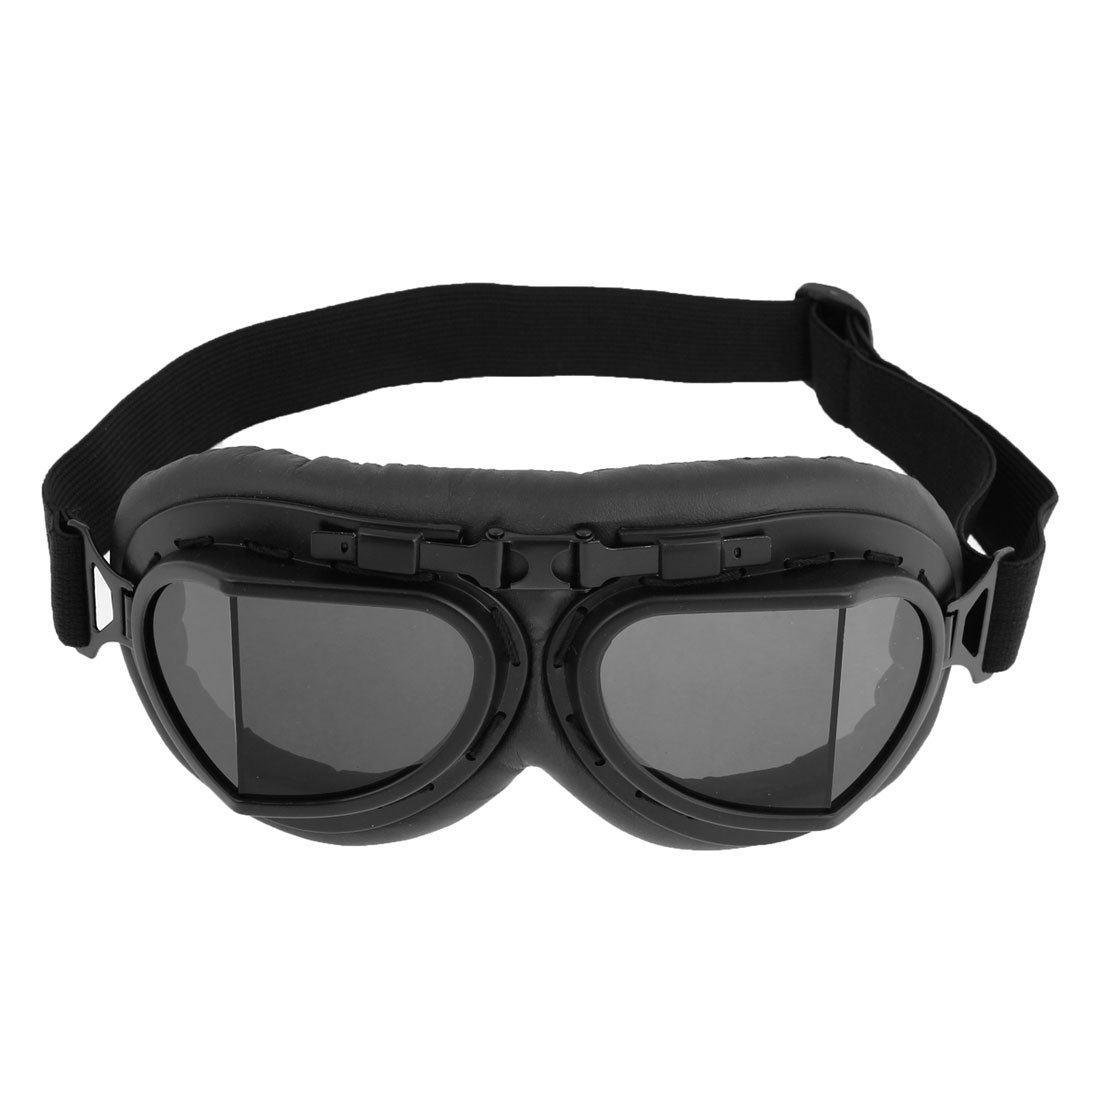 Unique Bargains Clear Lens Full Rim Skiing Ski Racing Goggles Eyewear Protective Glasses by